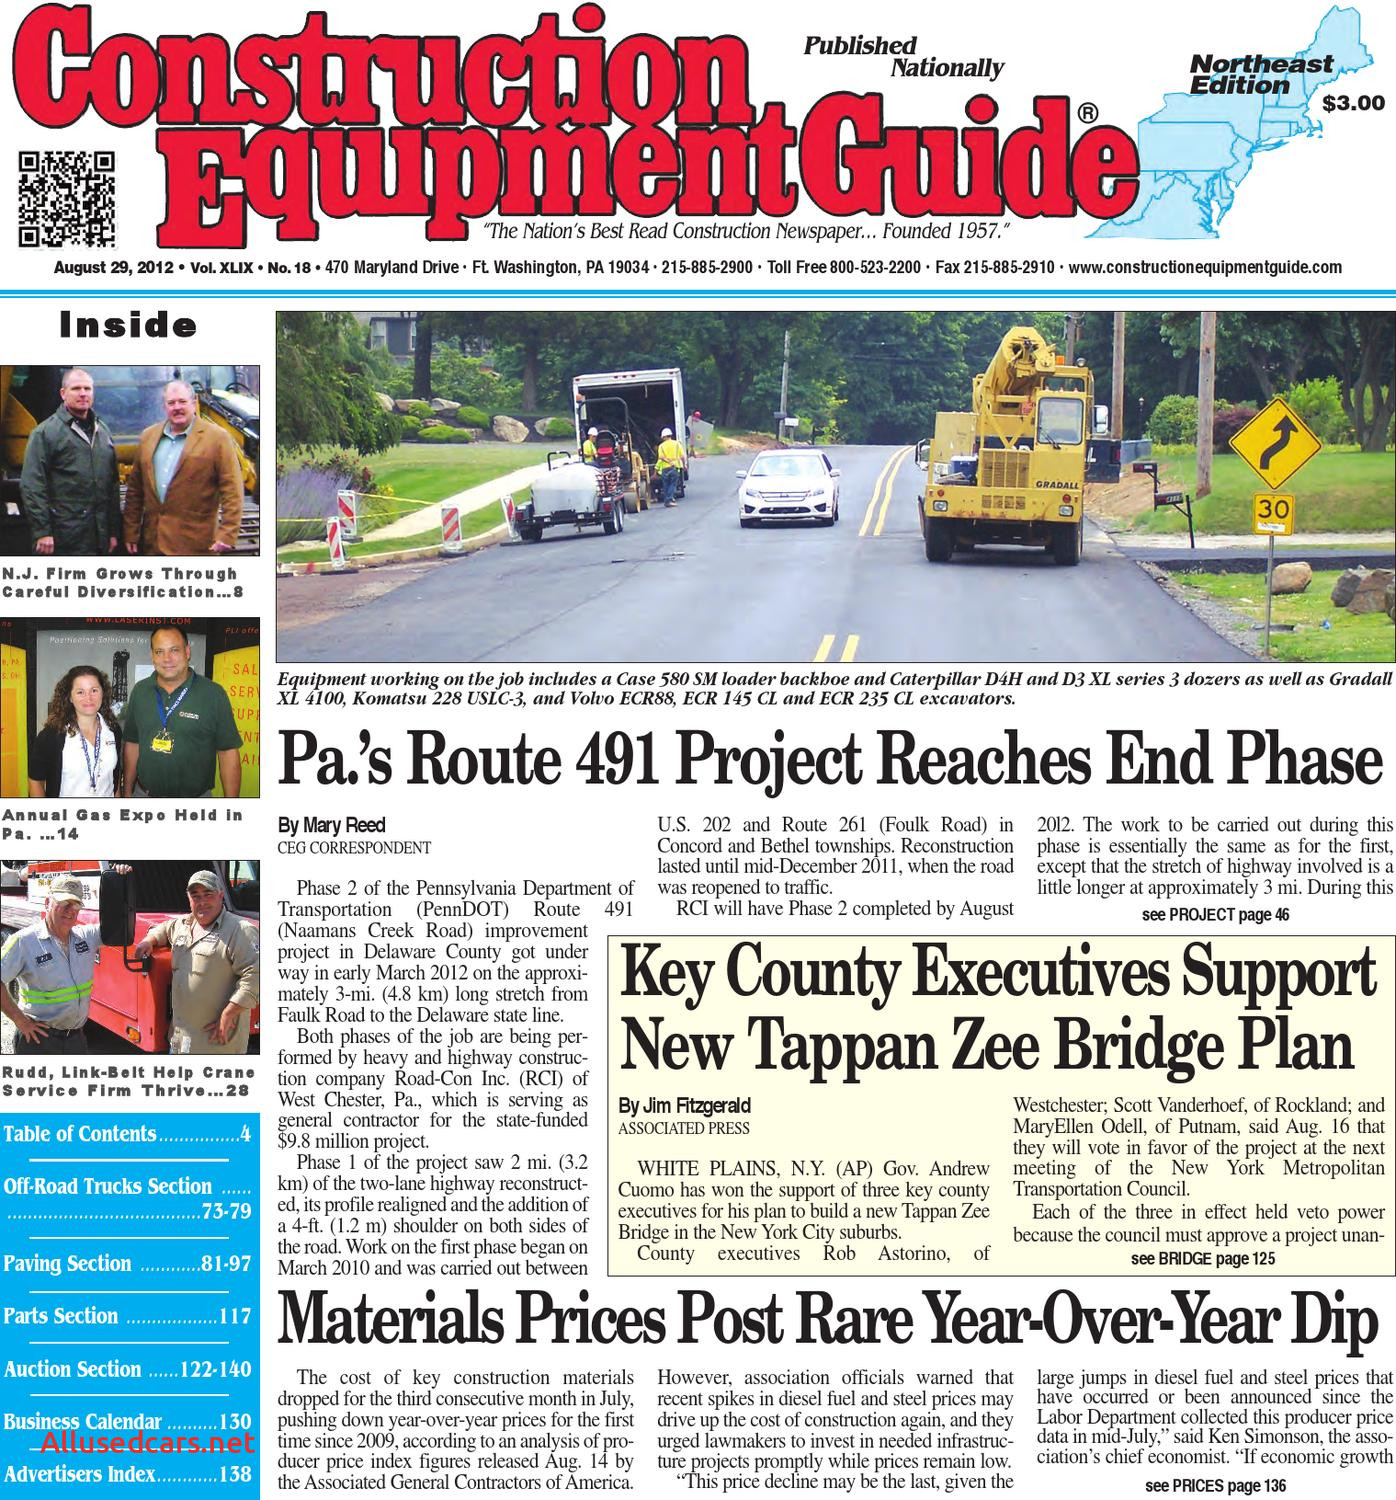 Used Cars for Sale 07882 Beautiful northeast 18 2012 by Construction Equipment Guide issuu